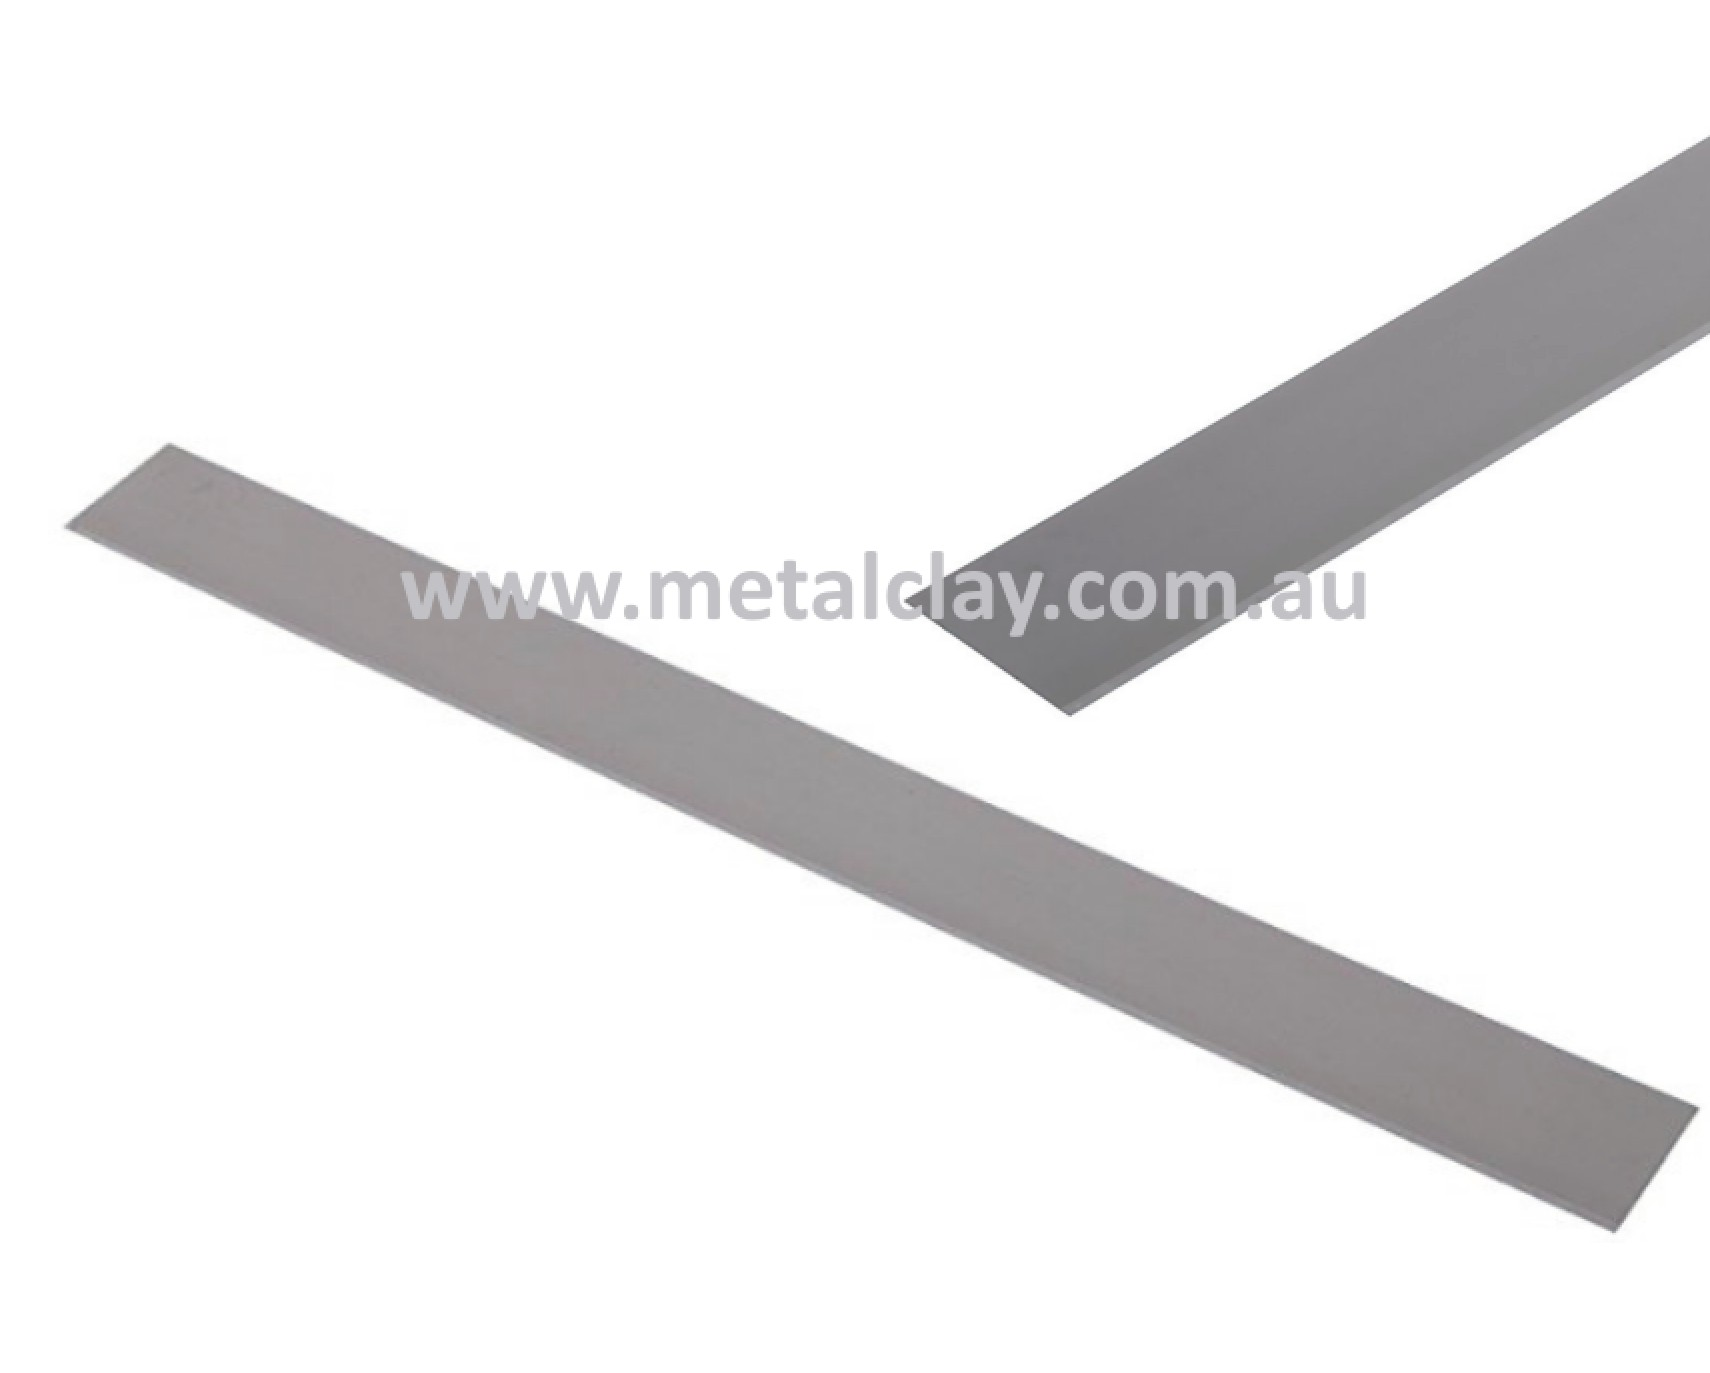 Long Stainless Steel Tissue Cutting Blade 20cm x 1